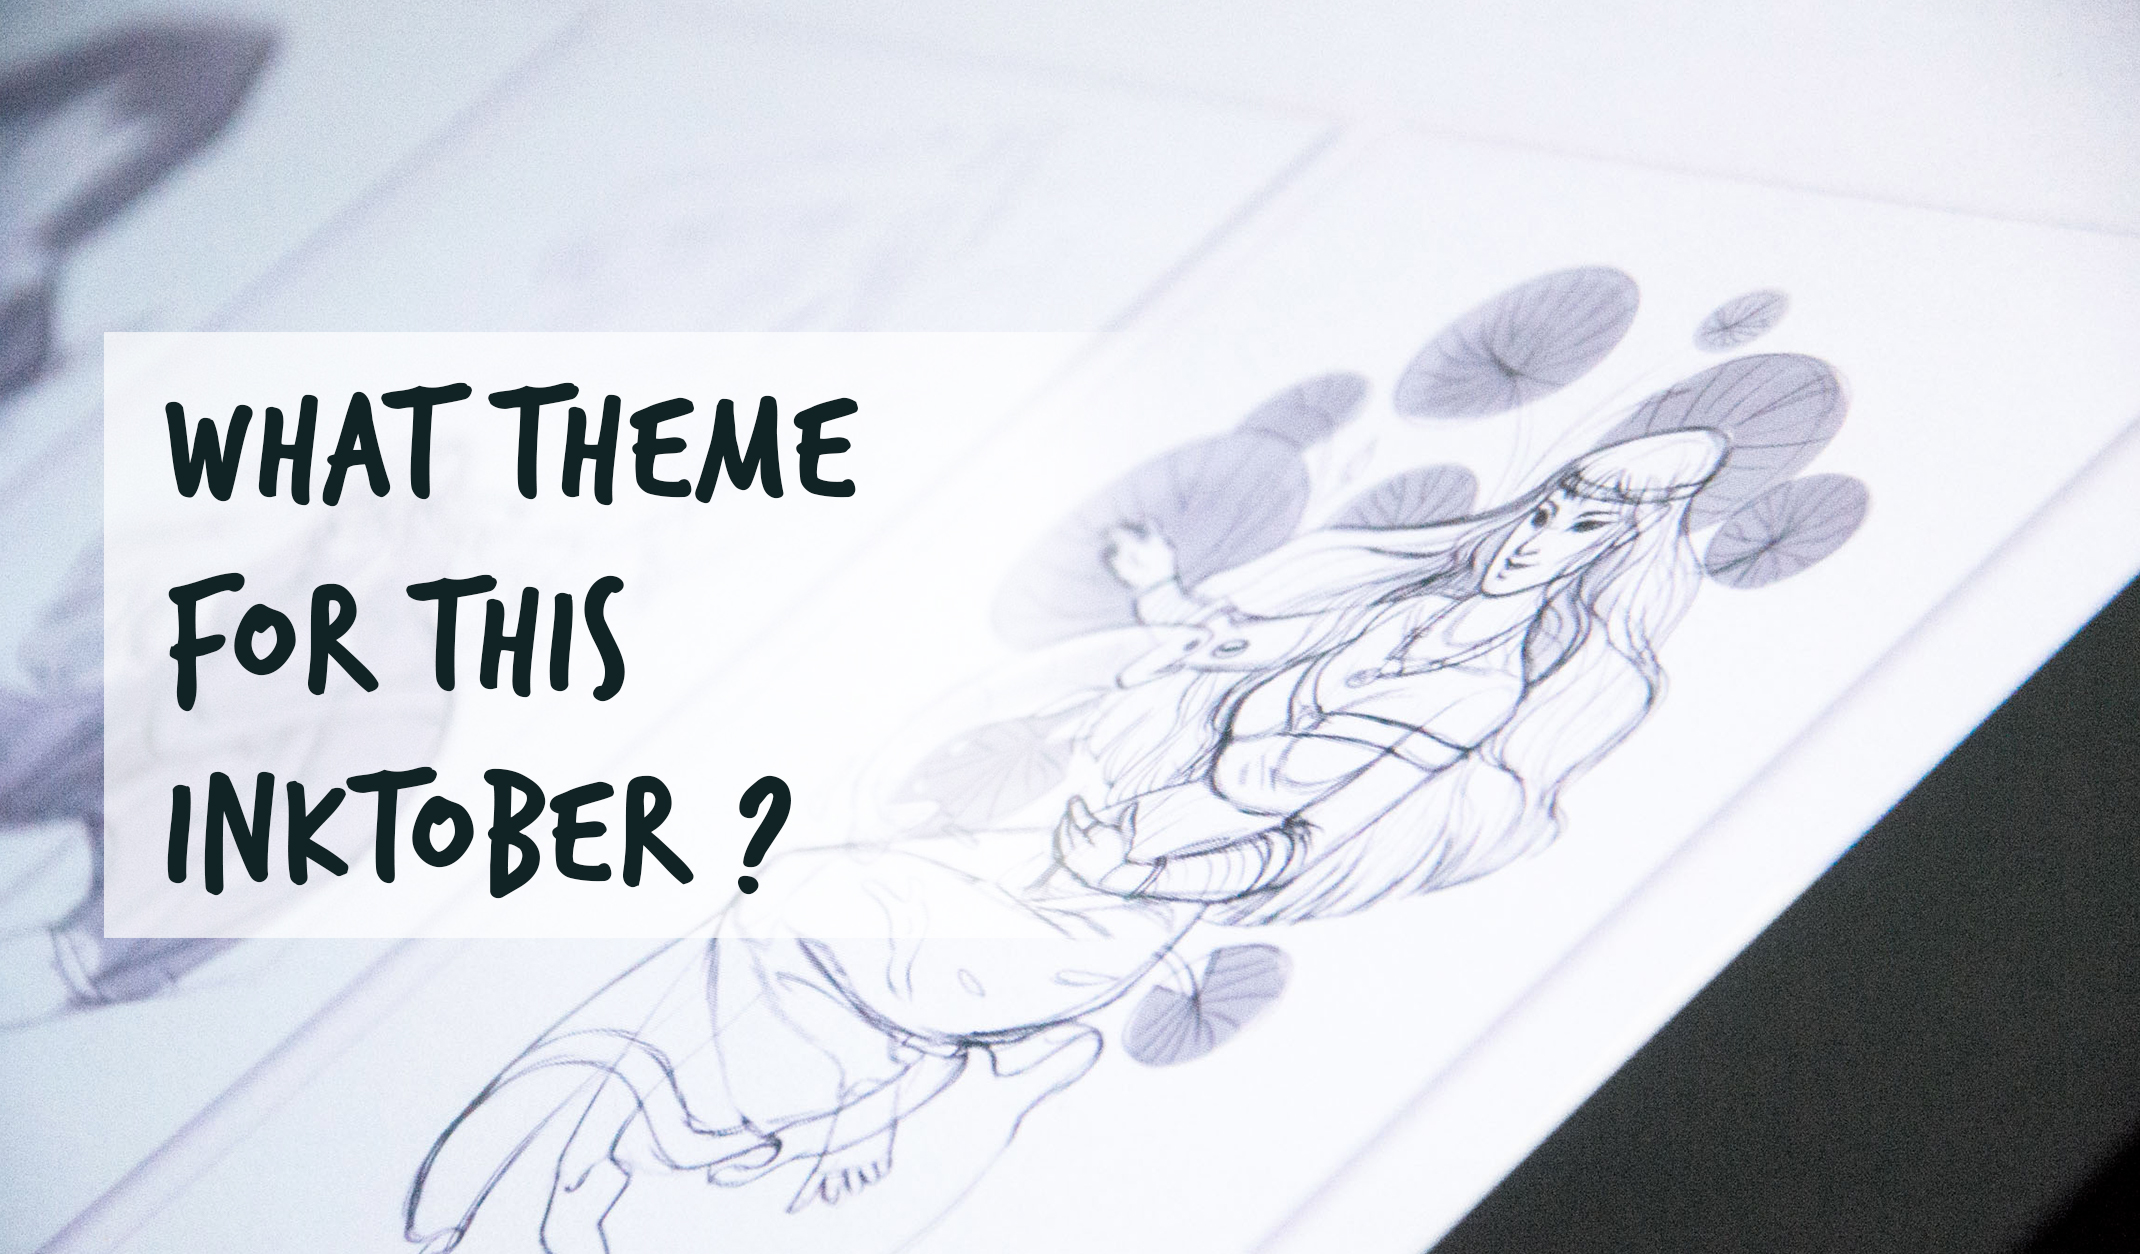 inktober 2019 theme prompt